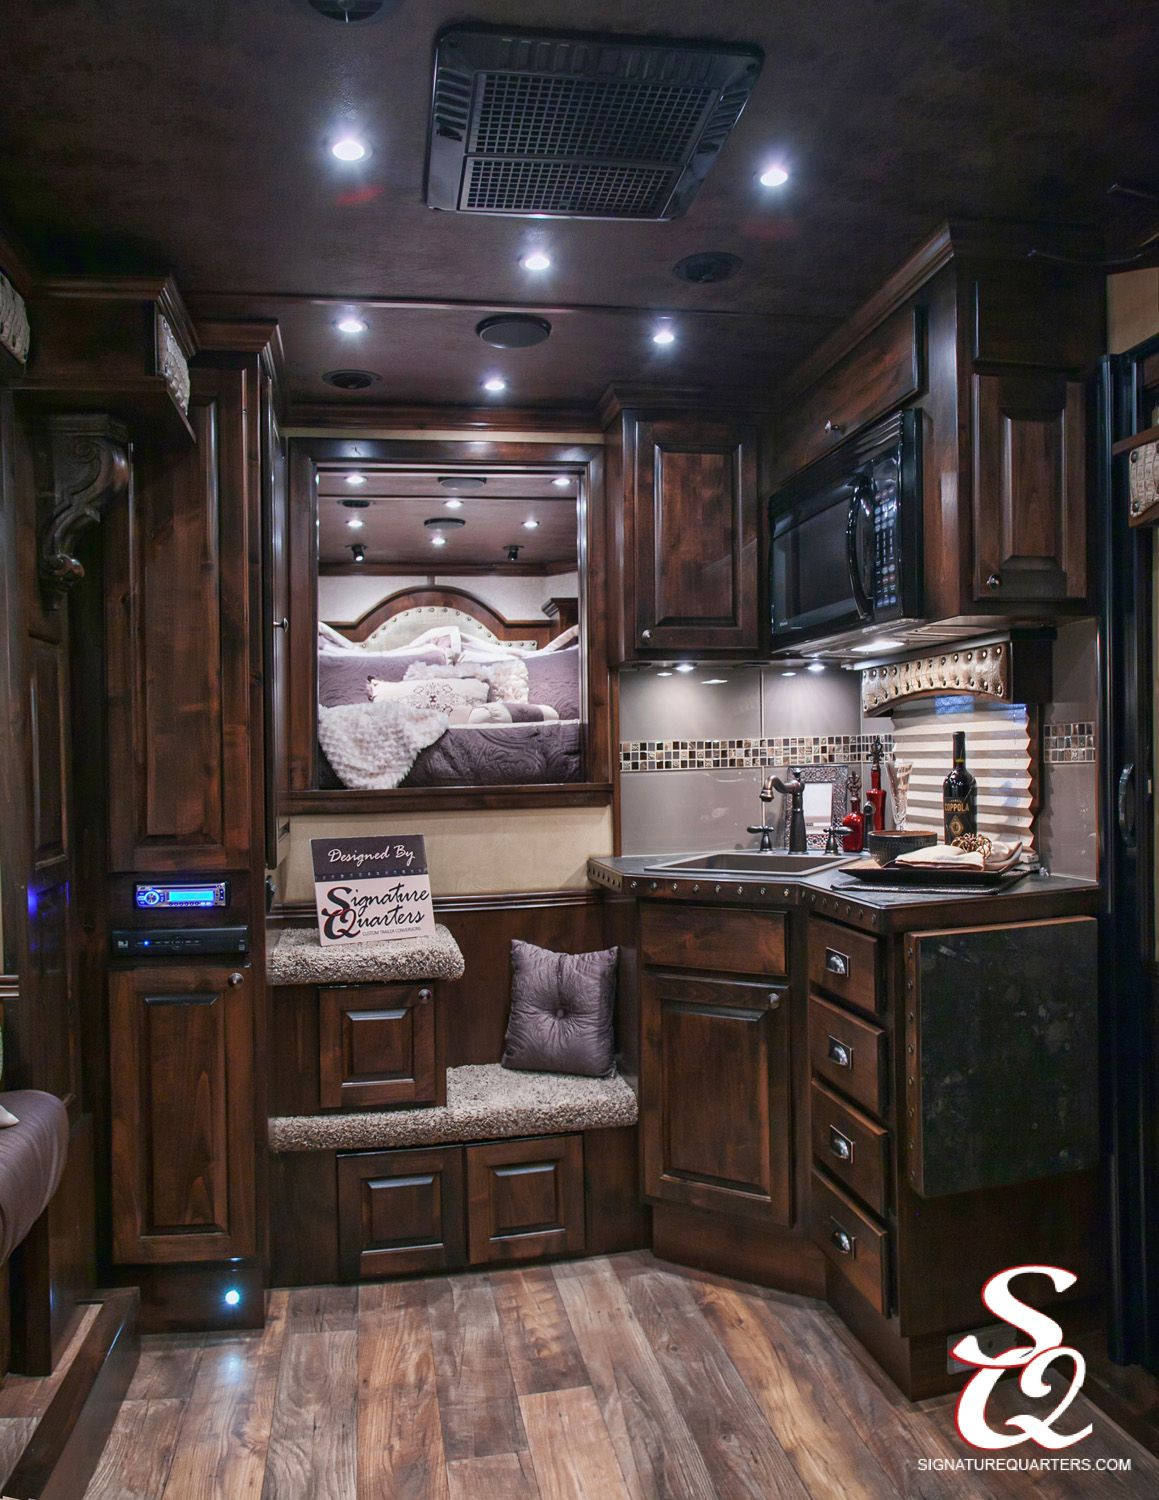 This Living Quarters Layout Utilizes All Space With A Great Home Feeling Horse Trailer Living Quarters Trailer Living Trailer